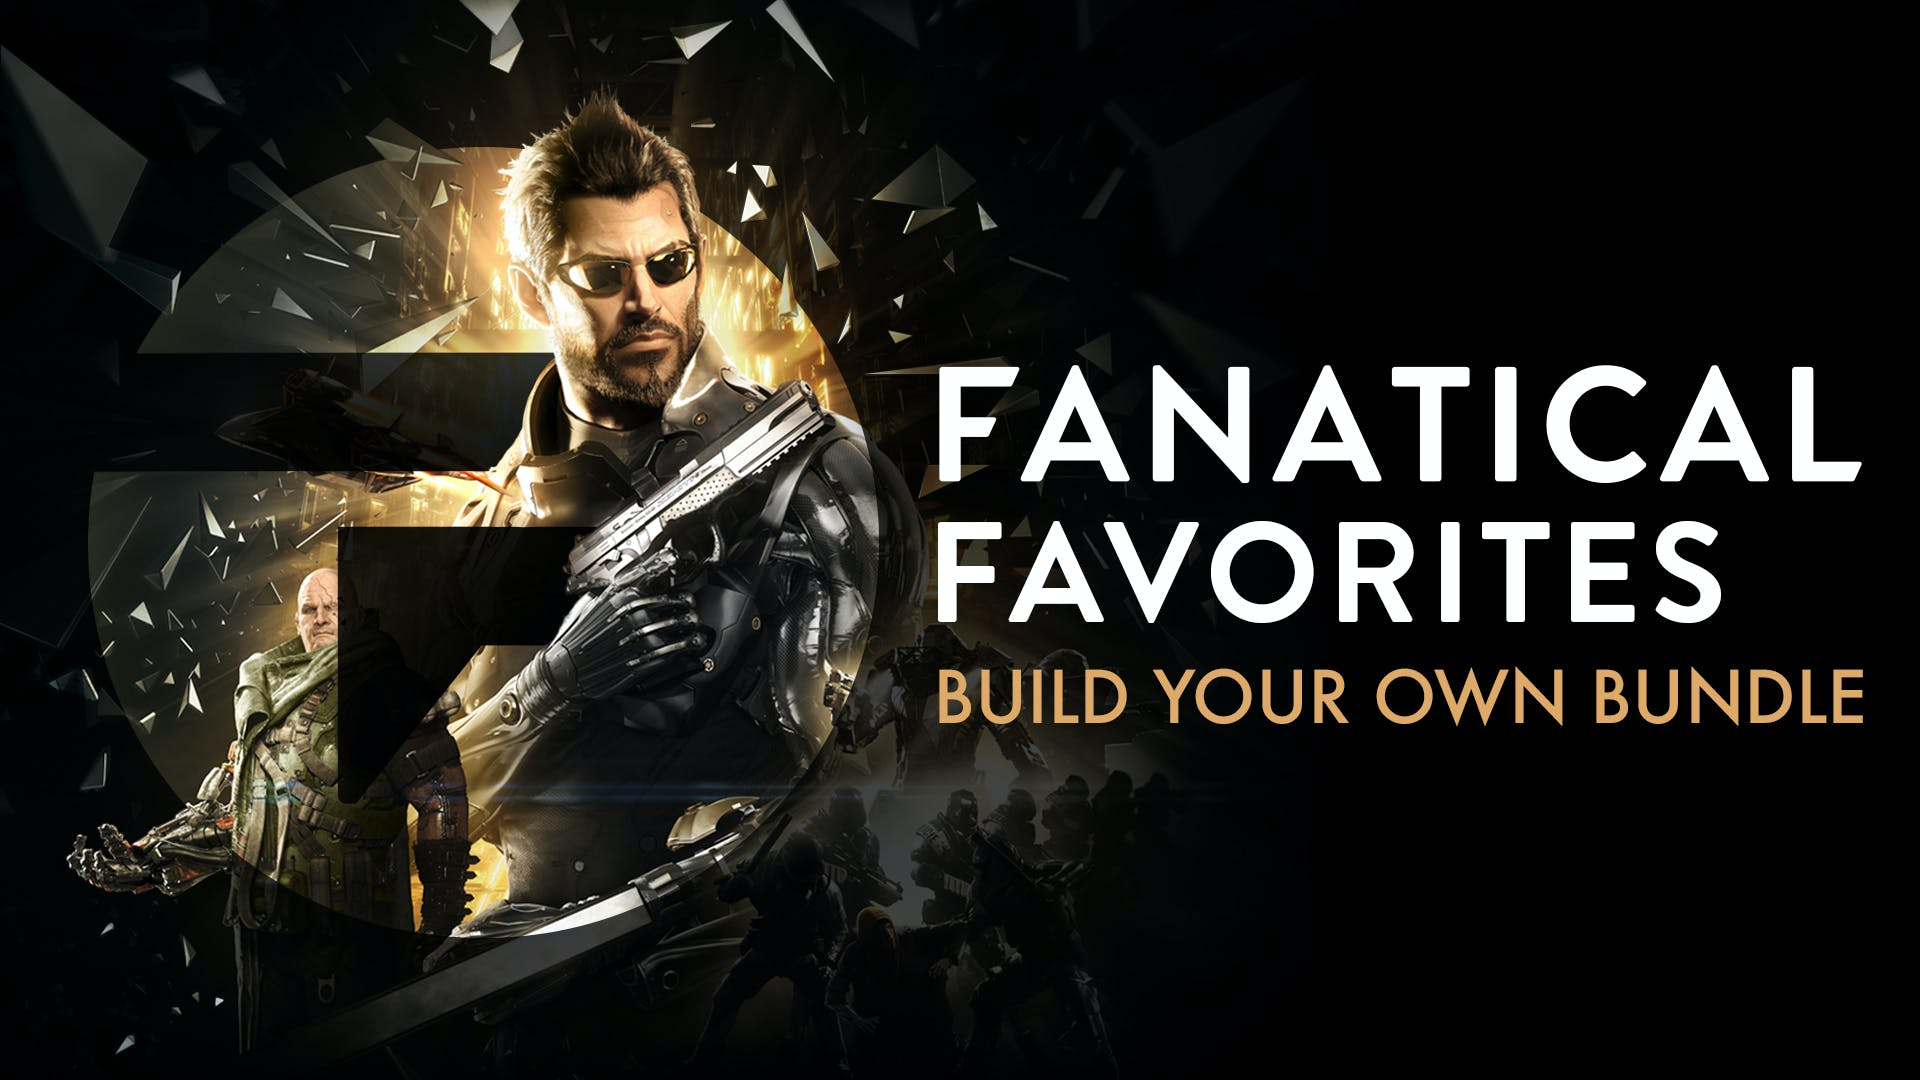 Fanatical Favorites - Build Your Own Bundle